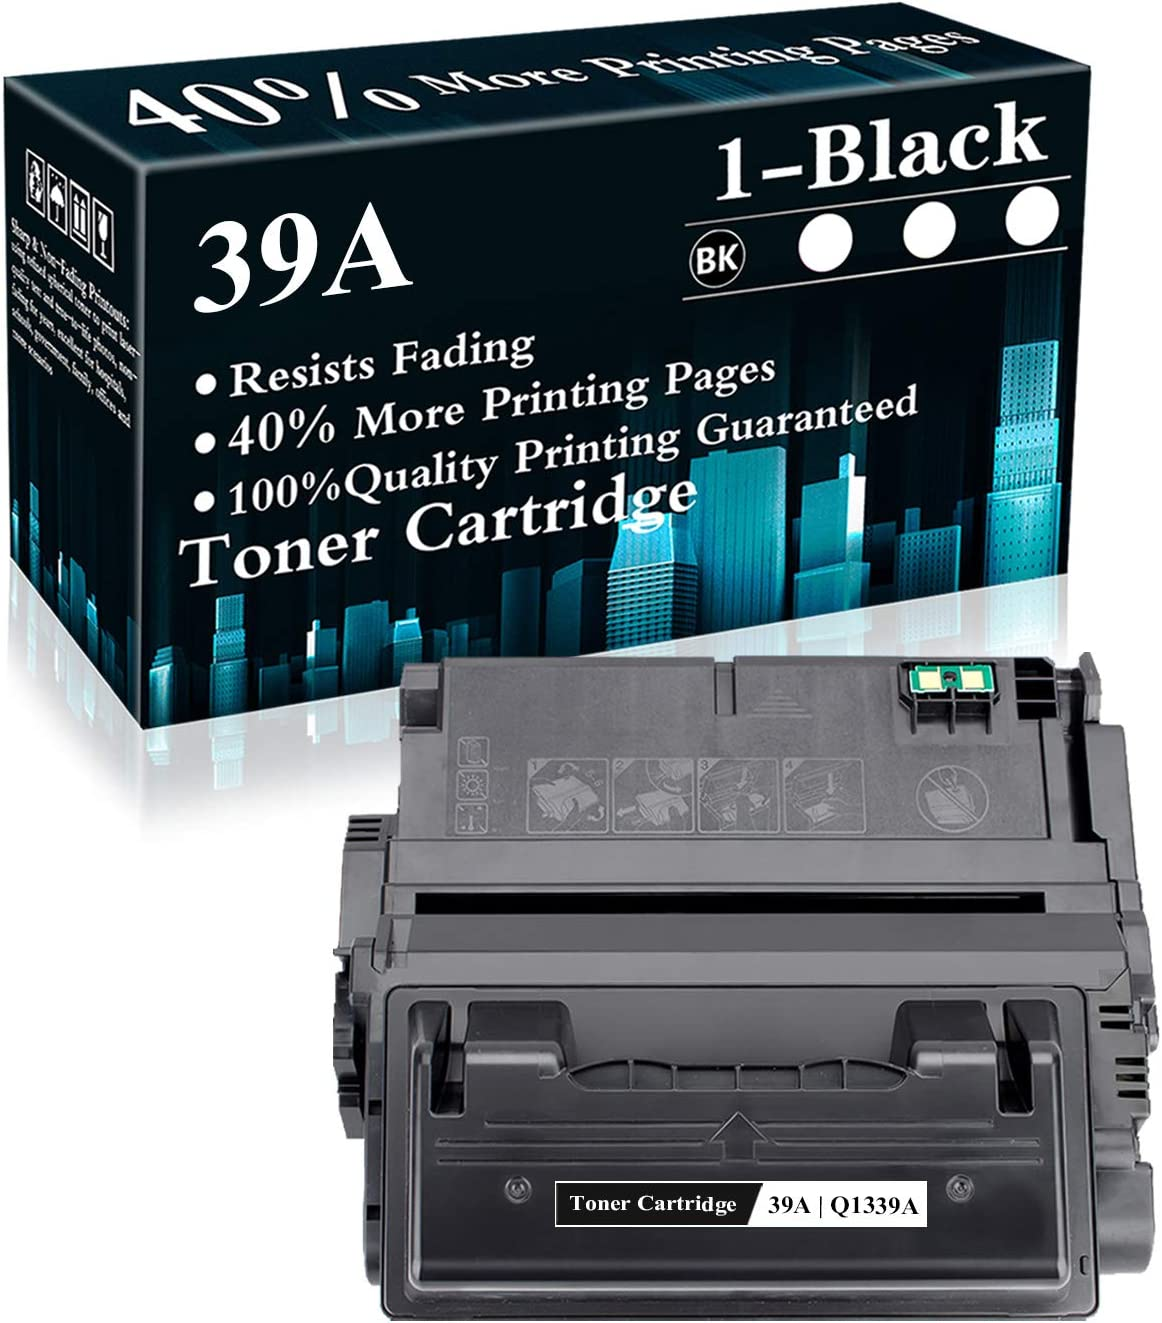 1 Pack 39A | Q1339A Black Compatible Toner Cartridge Replacement for HP Laserjet 4200 4200N 4200dtn 4250 4250n 4250dtnsl 4300n 4300dtns 4350n 4350tn 4350dtn M4345xs M4345xm MFP Printer,Sold by TopInk